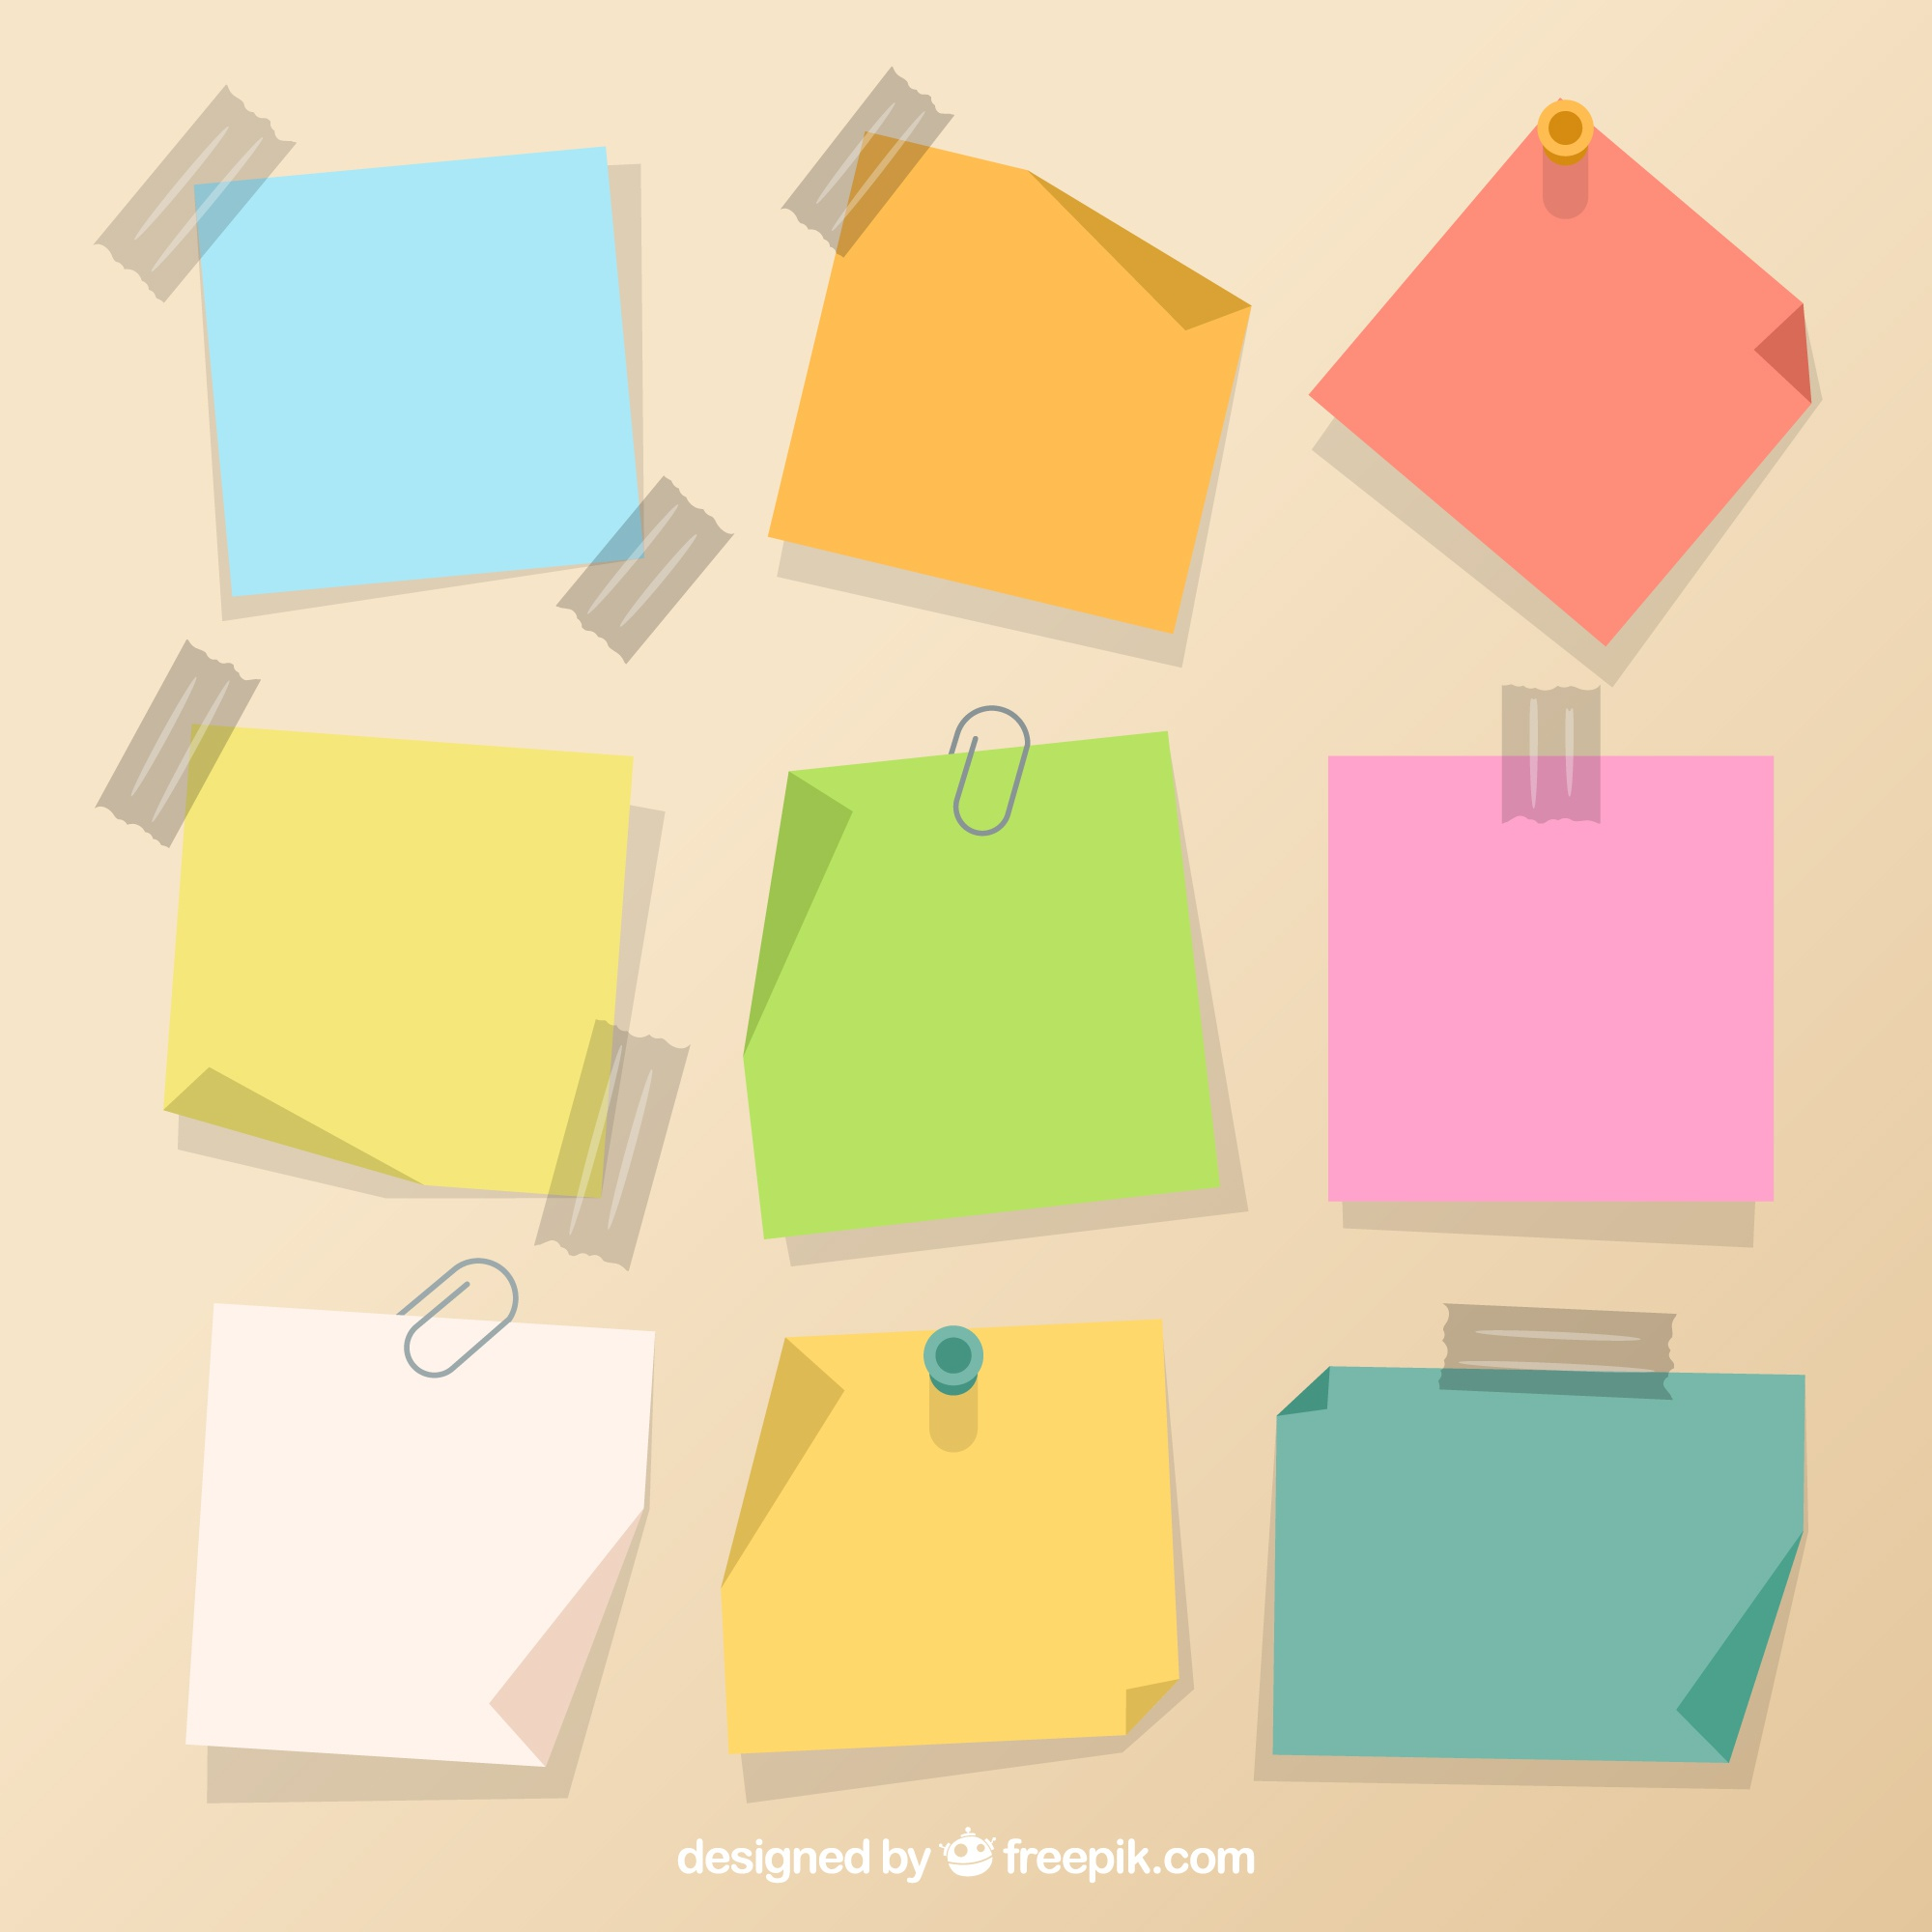 Assortment of colorful adhesive notes